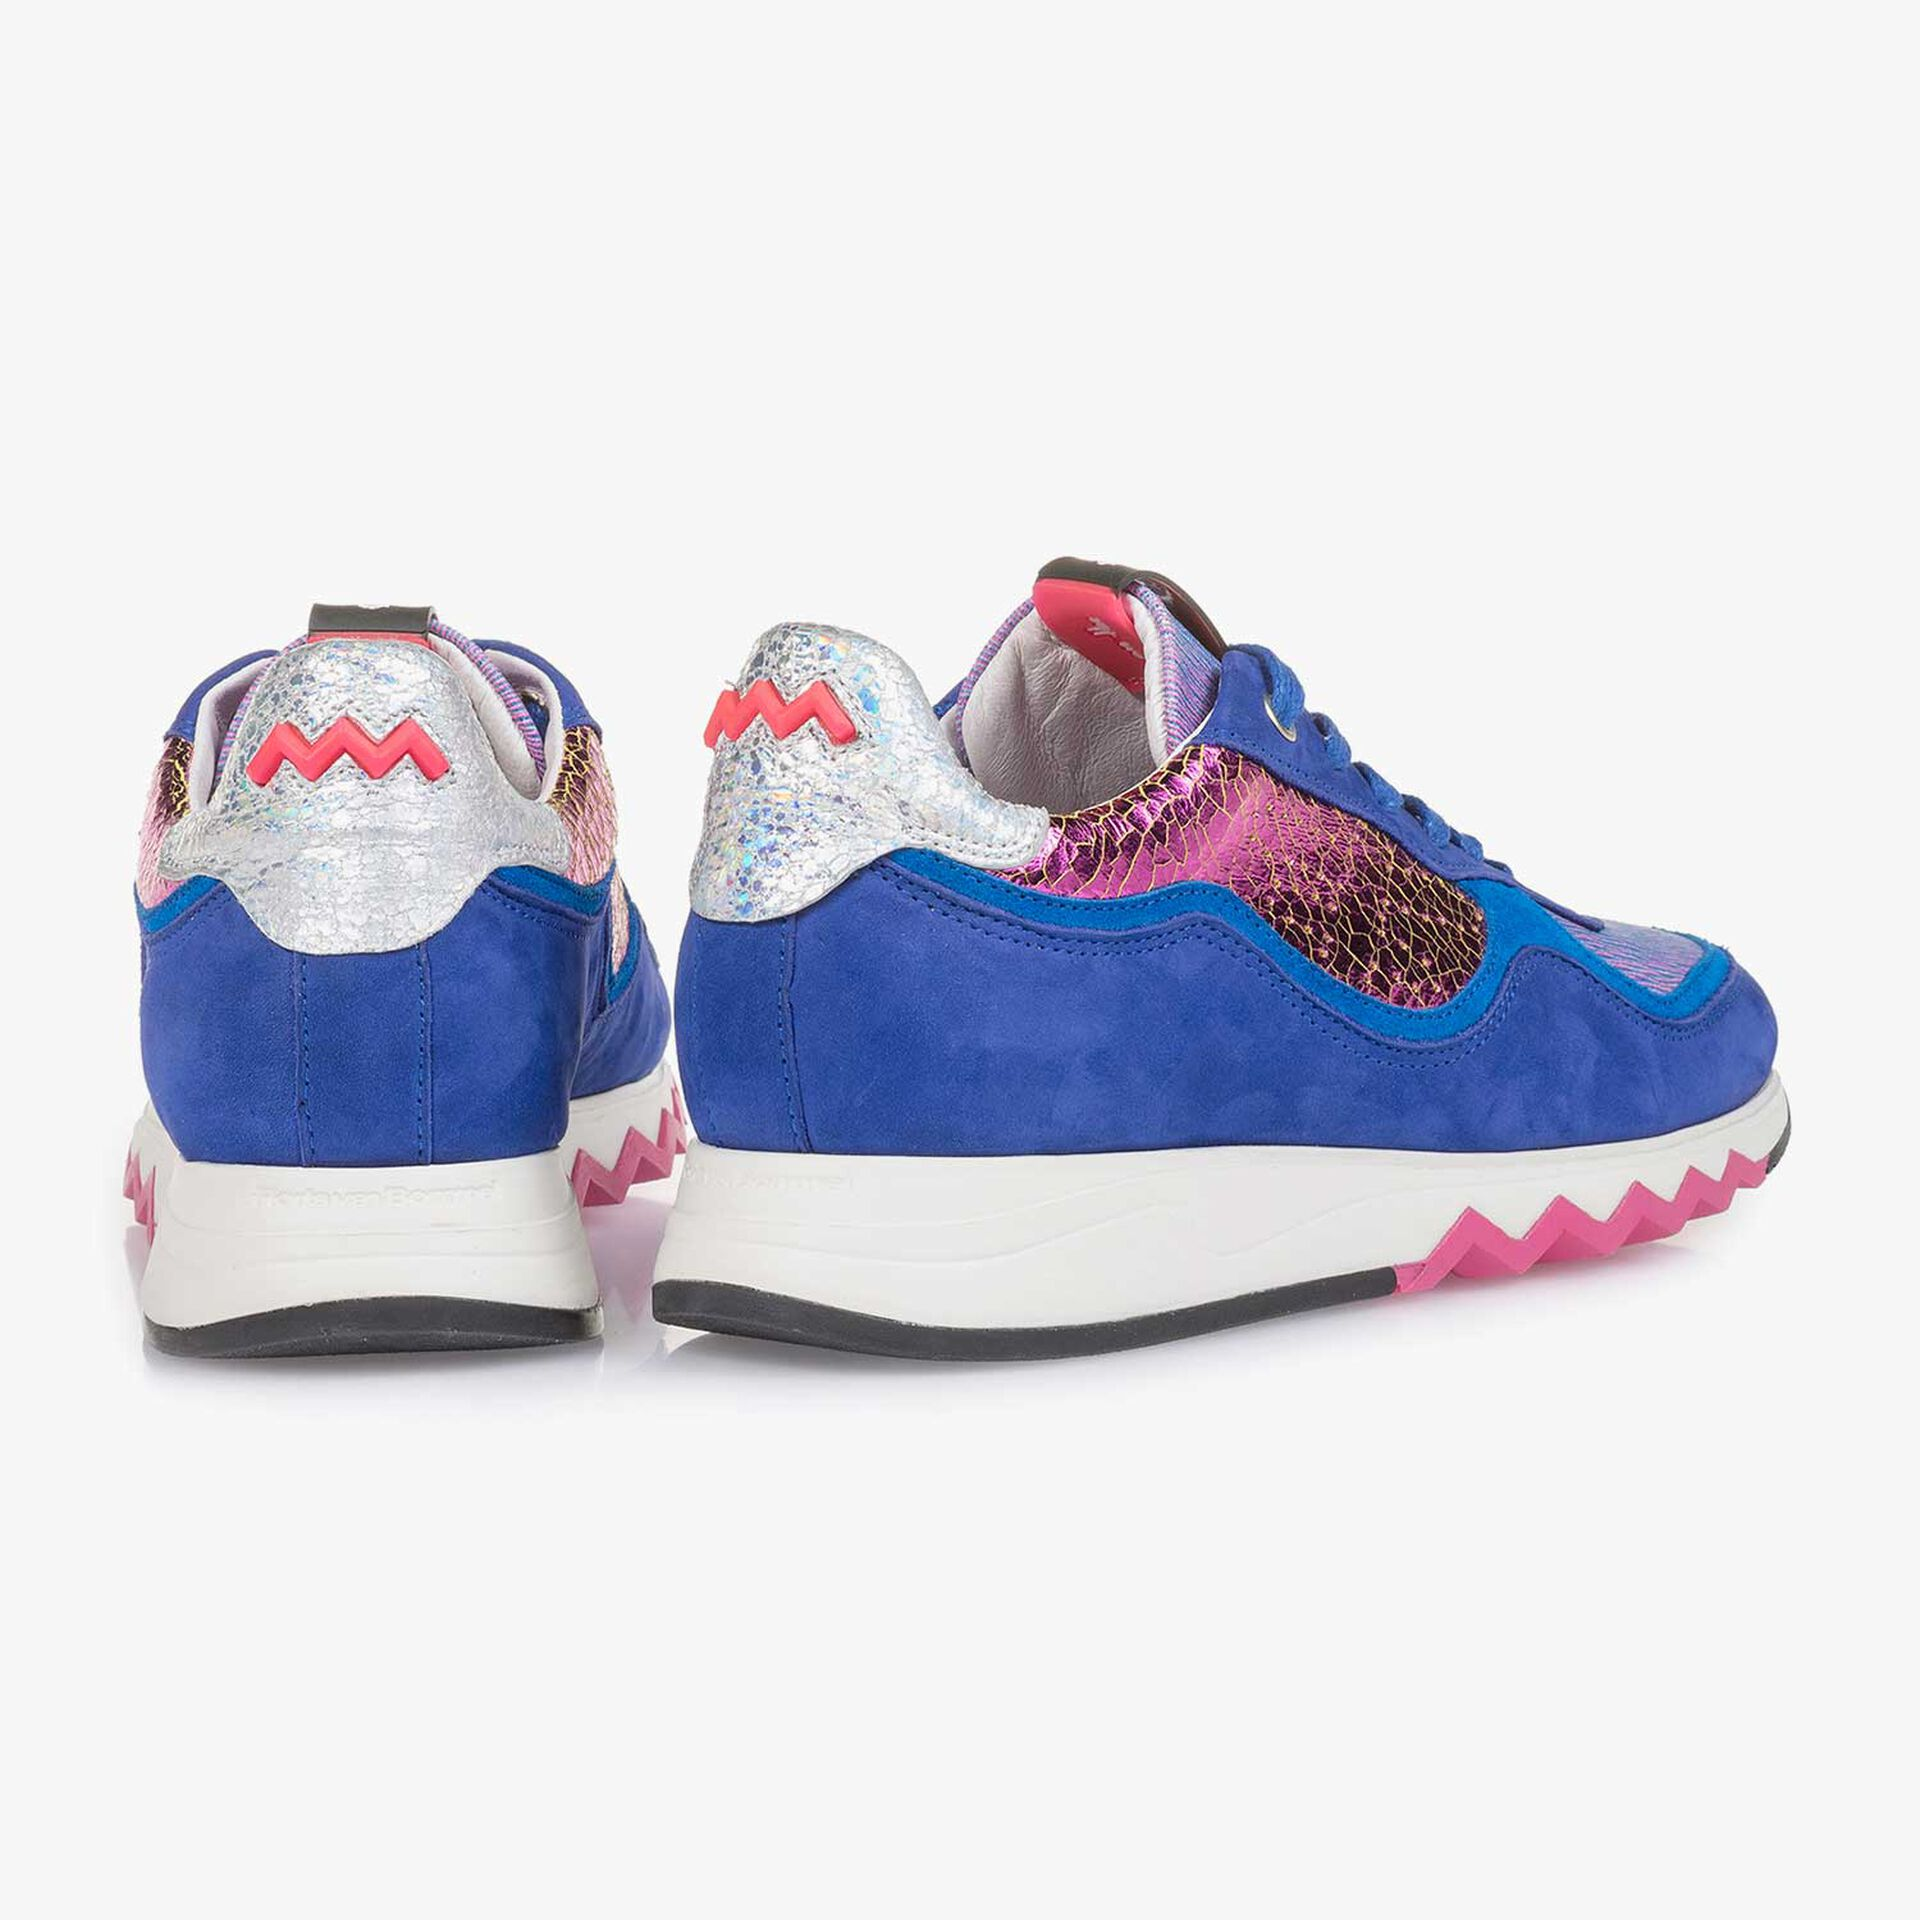 Cobalt blue suede leather sneaker